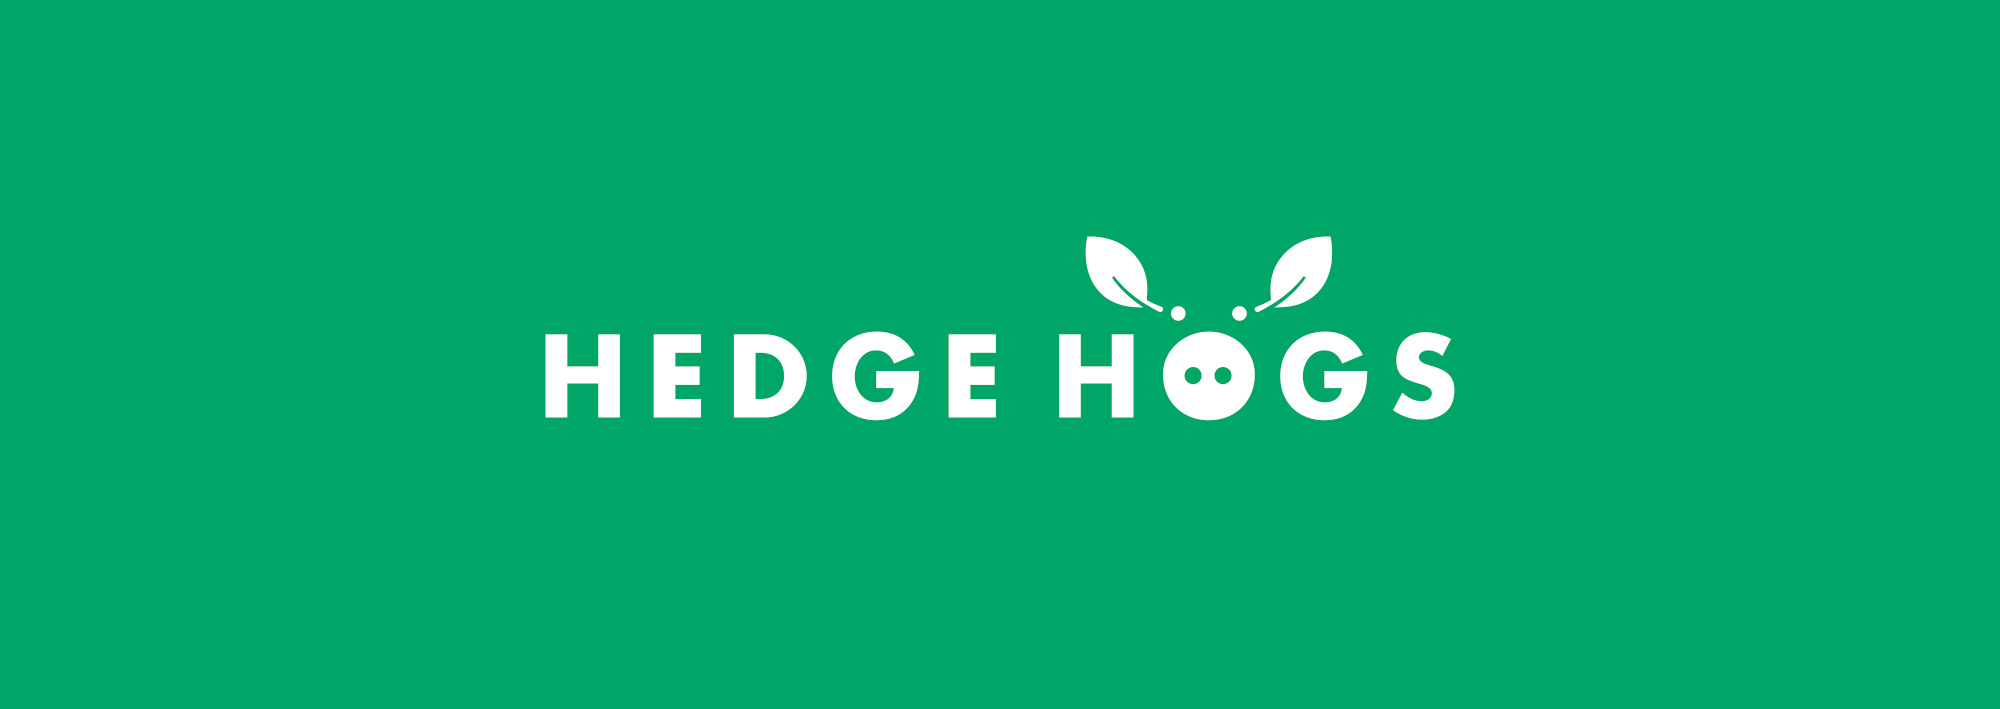 Hedge Hogs logo design